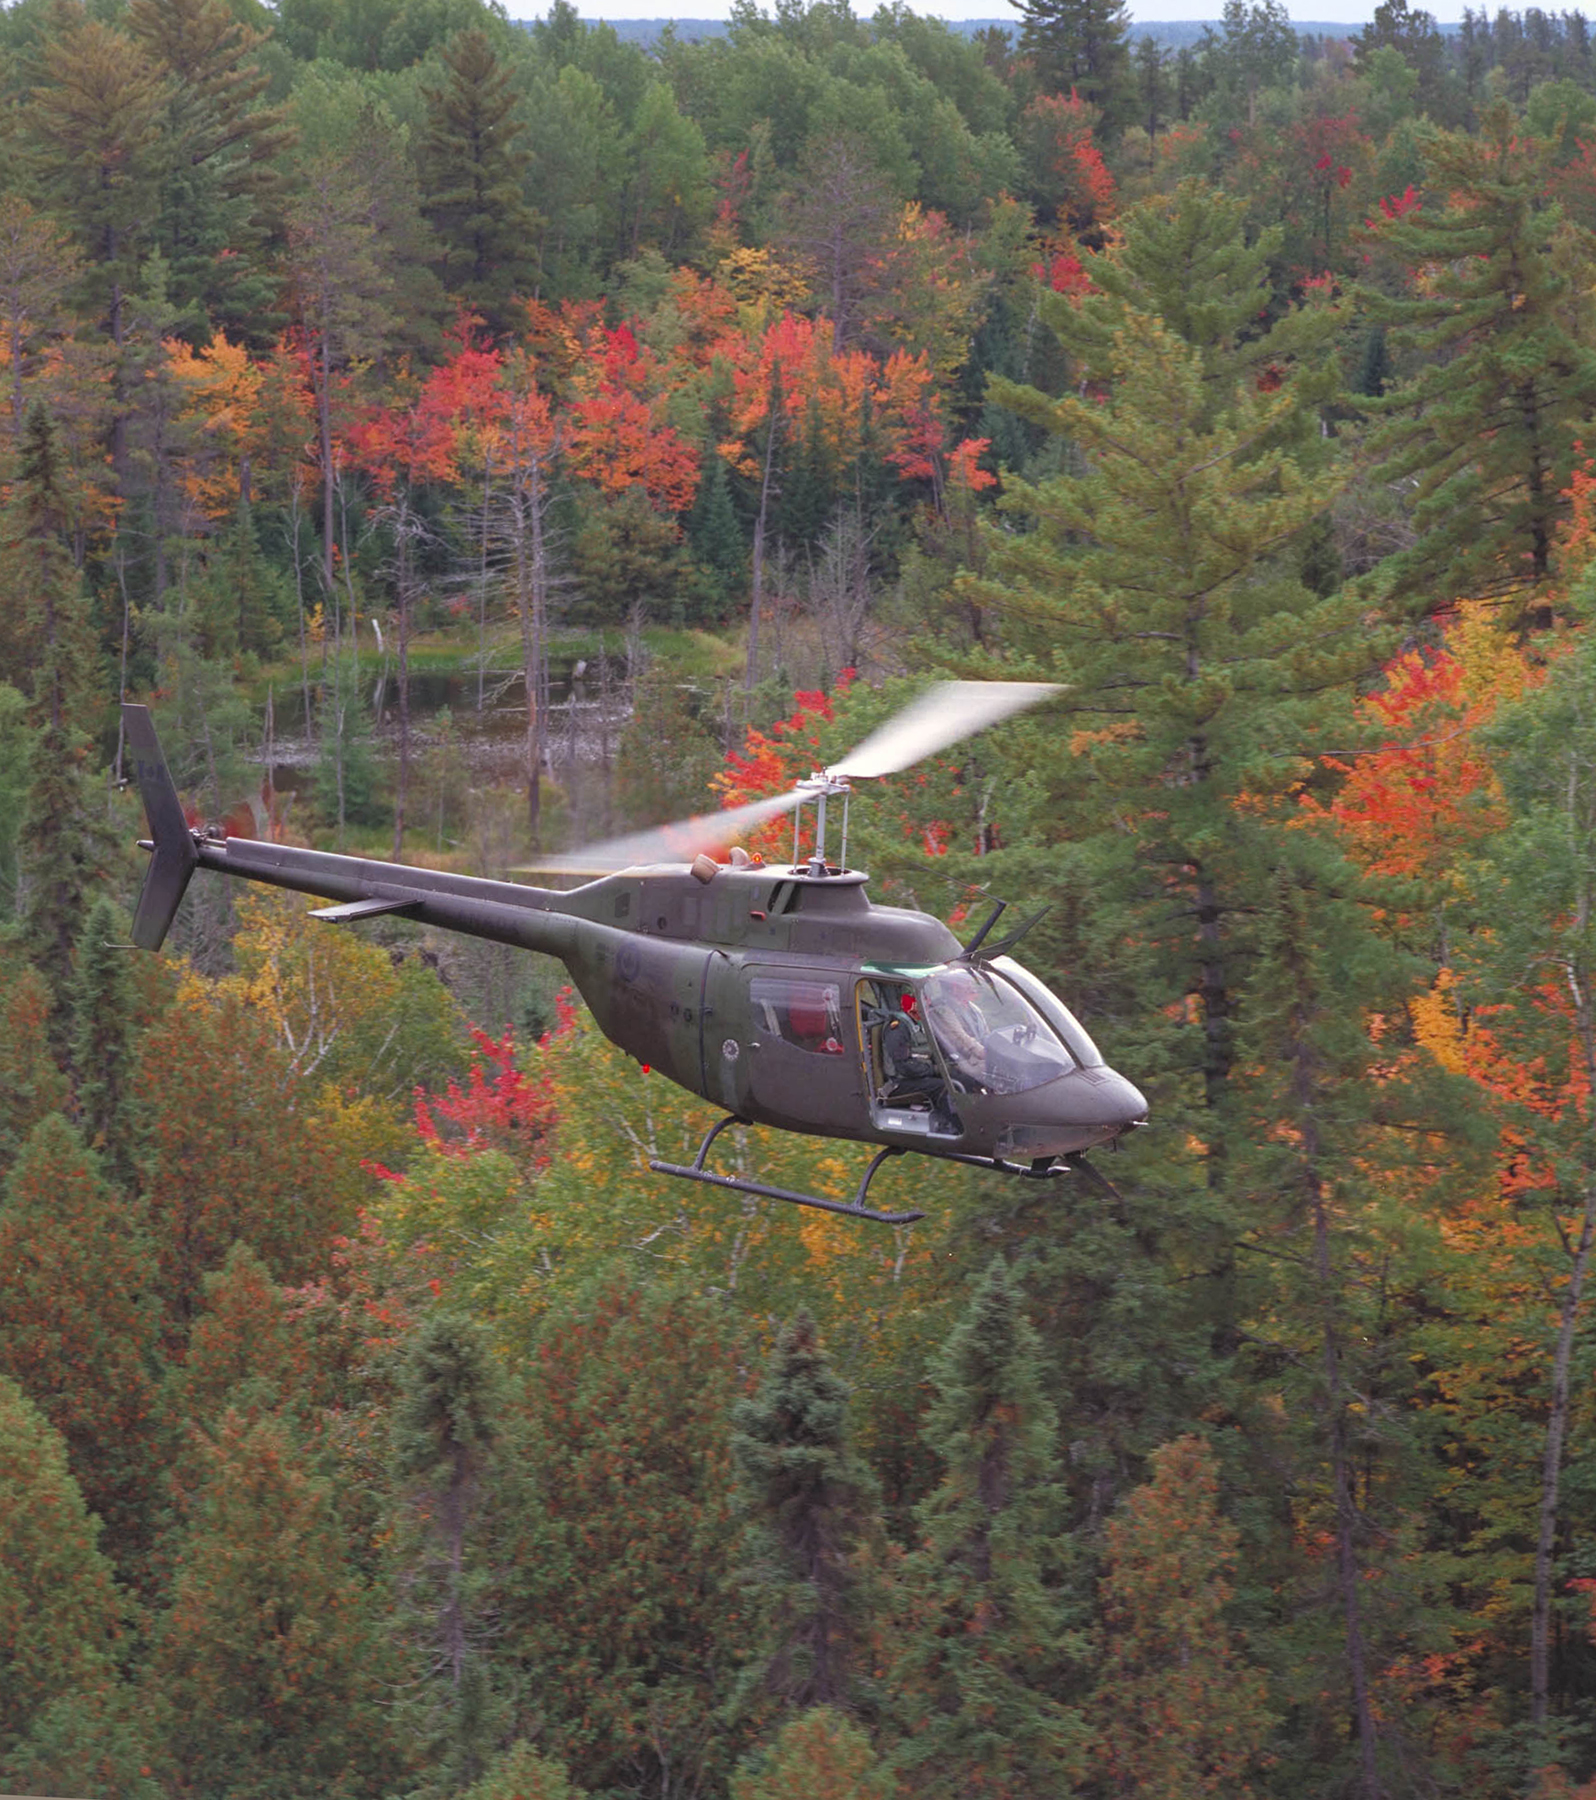 A CH-136 Kiowa from 427 Tactical Helicopter Squadron flies over autumn trees at Canadian Forces Base Petawawa, Ontario, on September 21, 1988. PHOTO: Warrant Officer Vic Johnson, ISC88-971